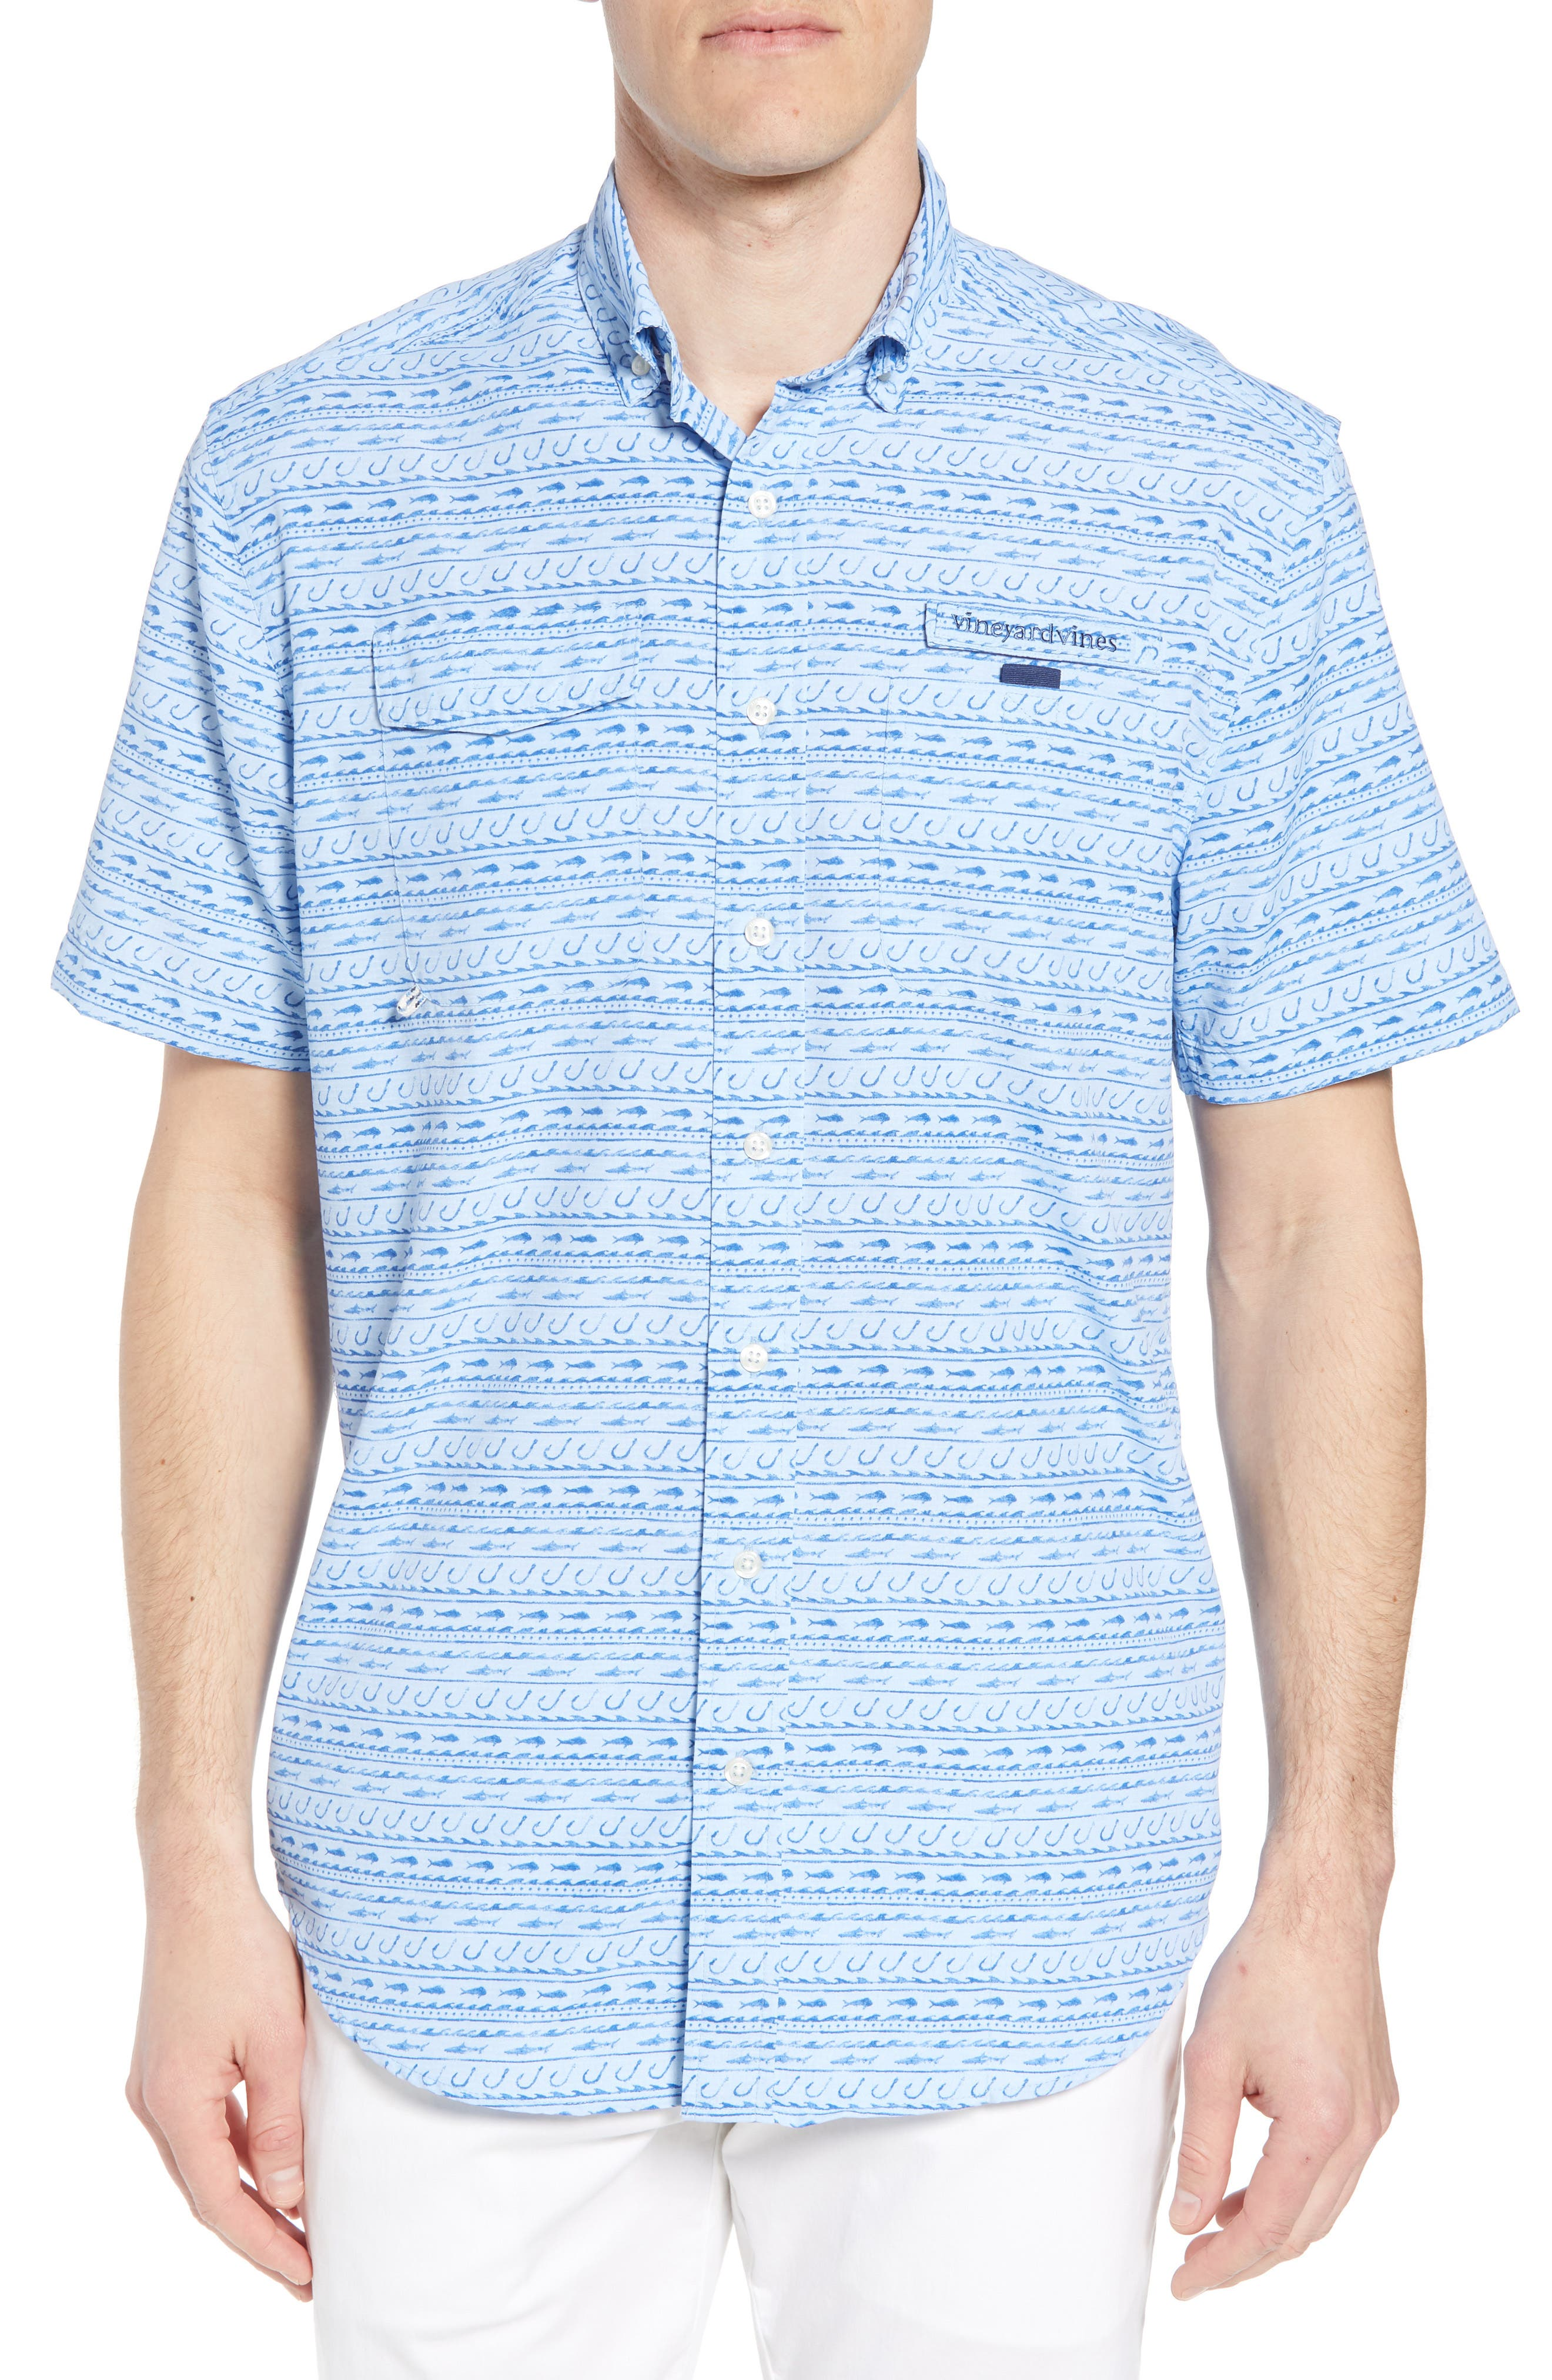 Fish Hook Wave Harbor Shirt,                             Main thumbnail 1, color,                             Basin Blue